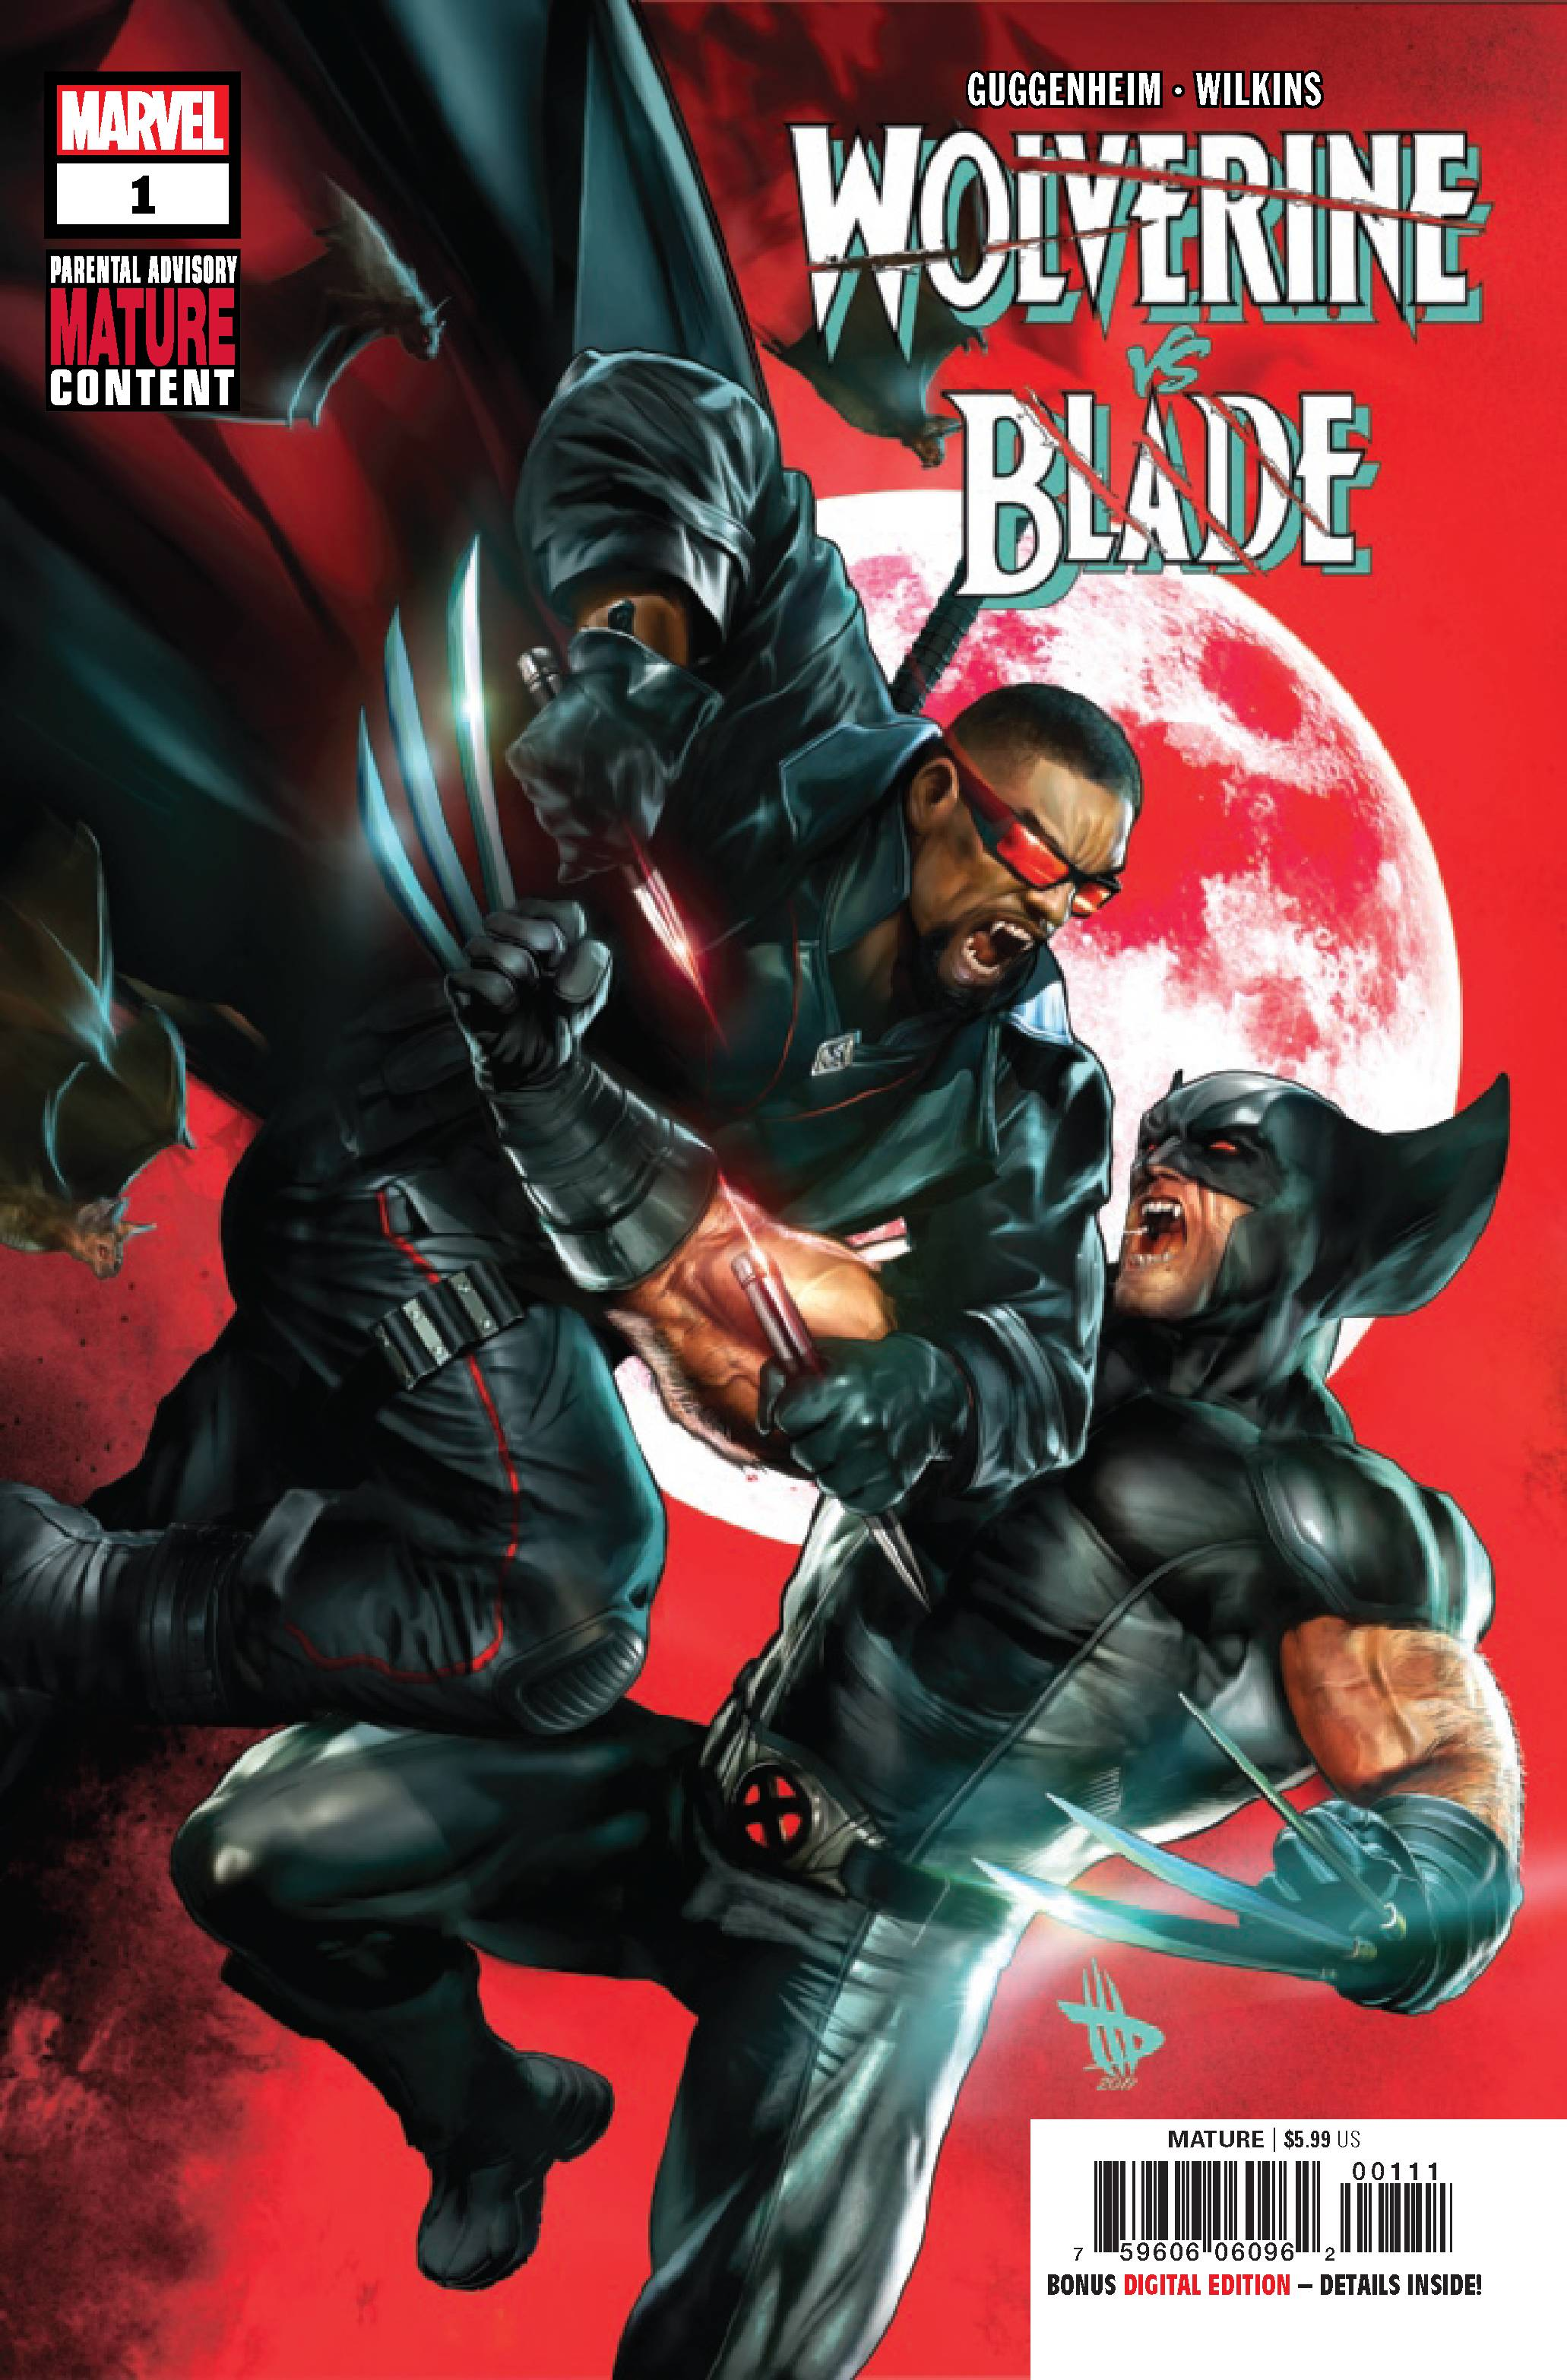 WOLVERINE VS BLADE SPECIAL #1 (MR)